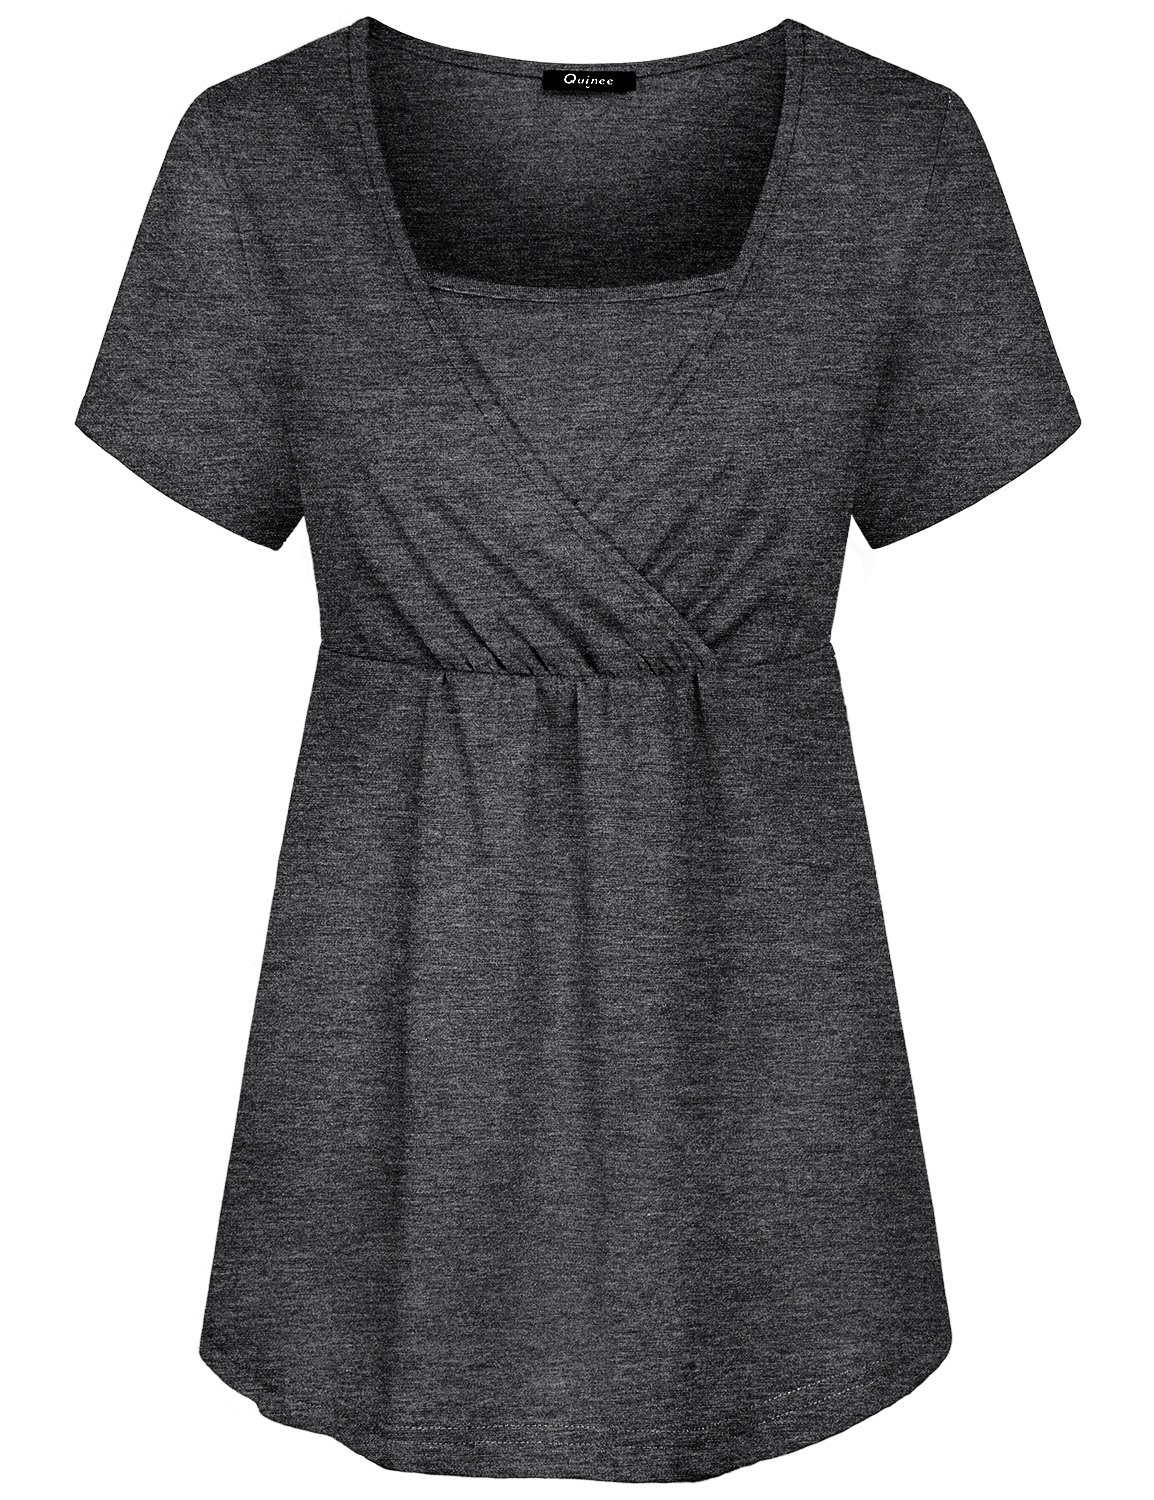 Quinee Nursing Shirts, Short Sleeve Nursing T Shirts for Women Breastfeeding Shirts Summer V Neck Cutest Maternity Shirts Clothes Plus Size Gray Large Breathable Layered Nursing Tops for Leggings by Quinee